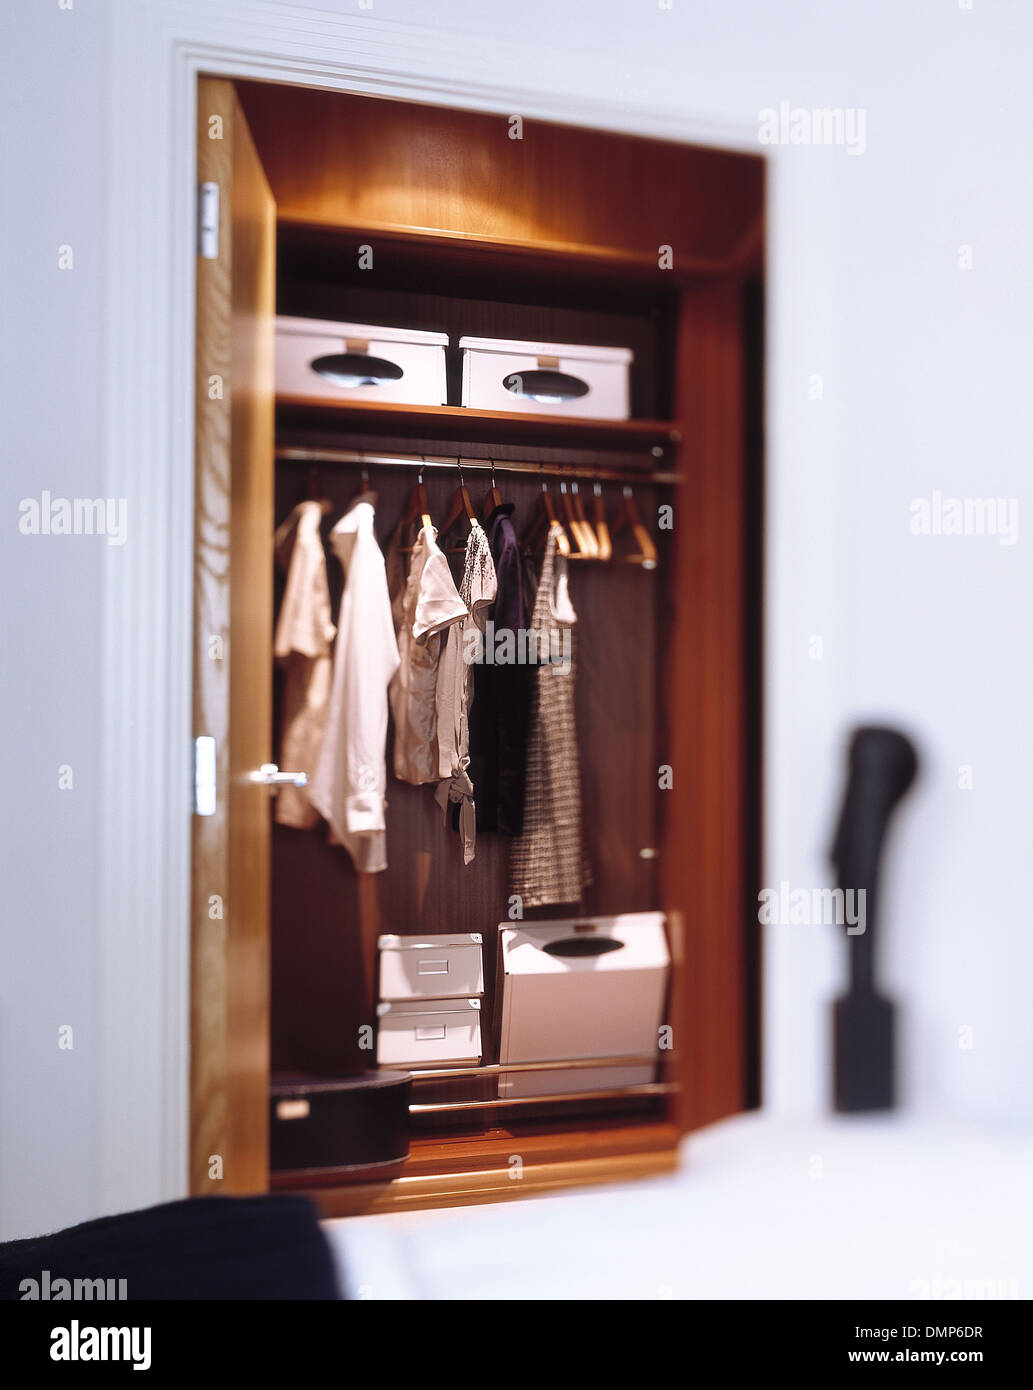 Built-in Bedroom Wardrobe Stock Photo: 64412259 - Alamy